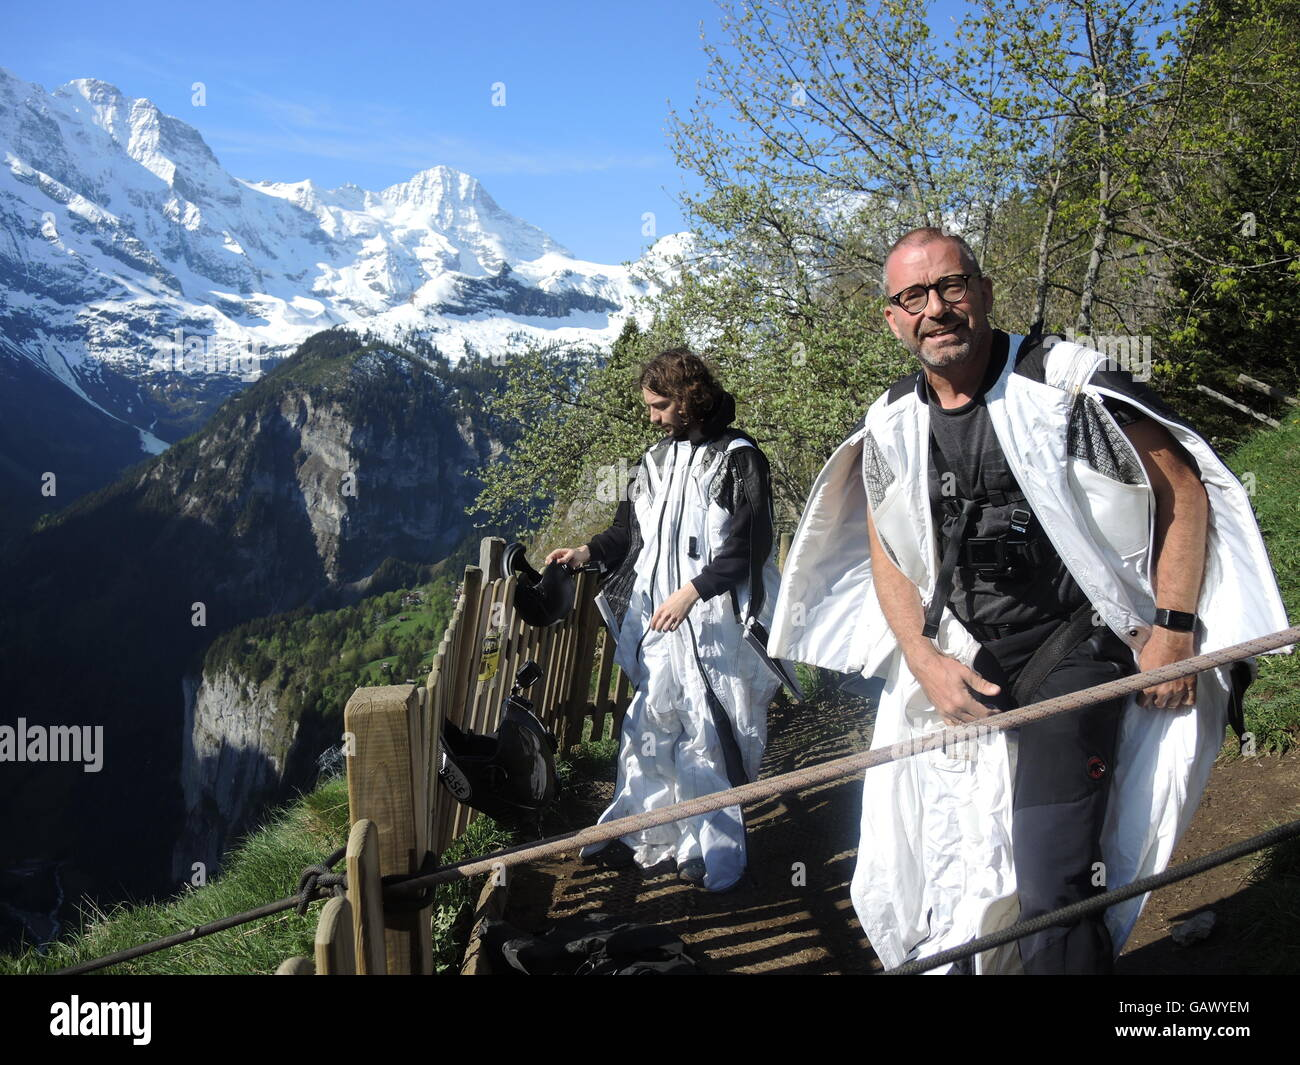 Lauterbrunnen, Switzerland. 26th May, 2016. Father Walter (r) and son Matthias Hilscher preparing for a base jump - Stock Image